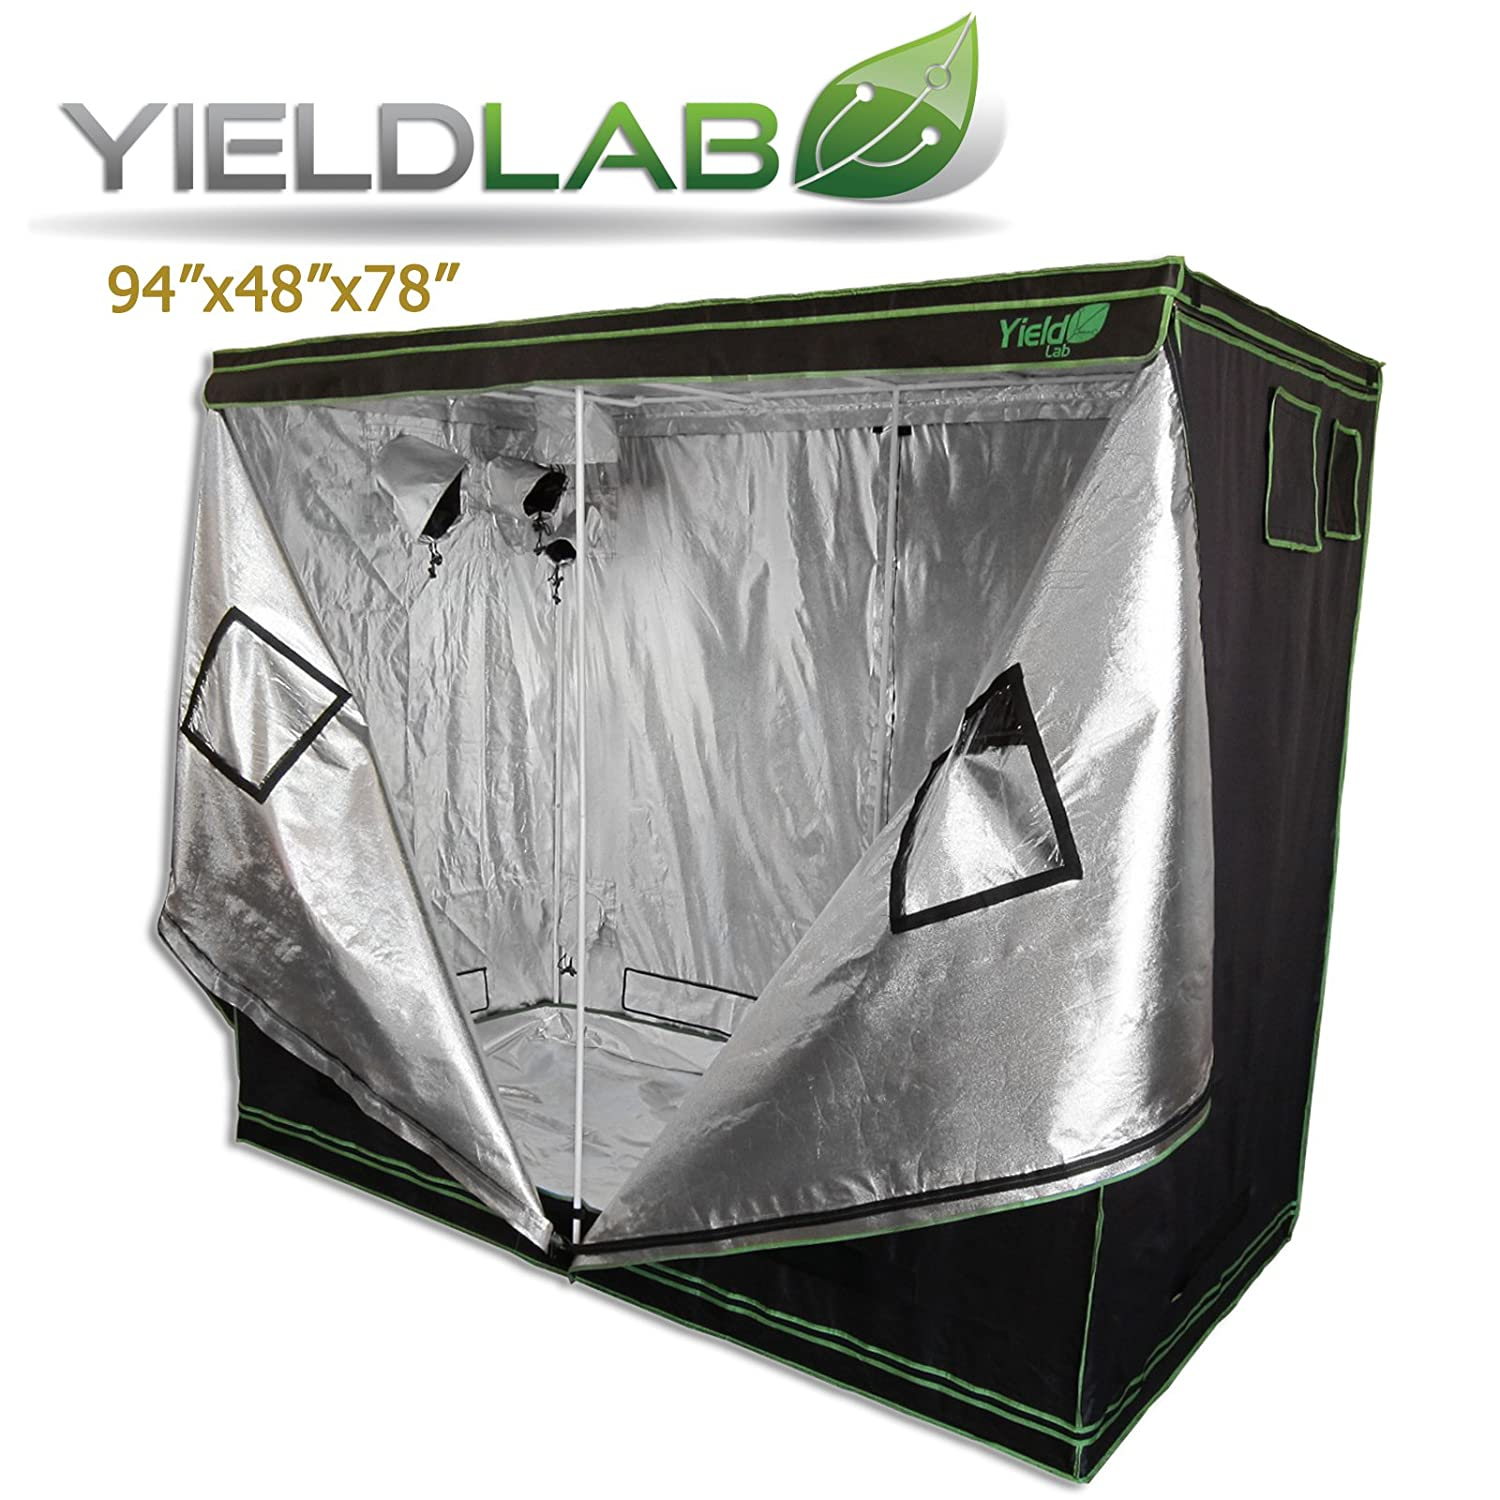 Yield Lab Grow Tent  sc 1 st  Grow Tents & Yield Lab Grow Tent and Ballast Grow Lights Review u2013 Buy Cheap ...